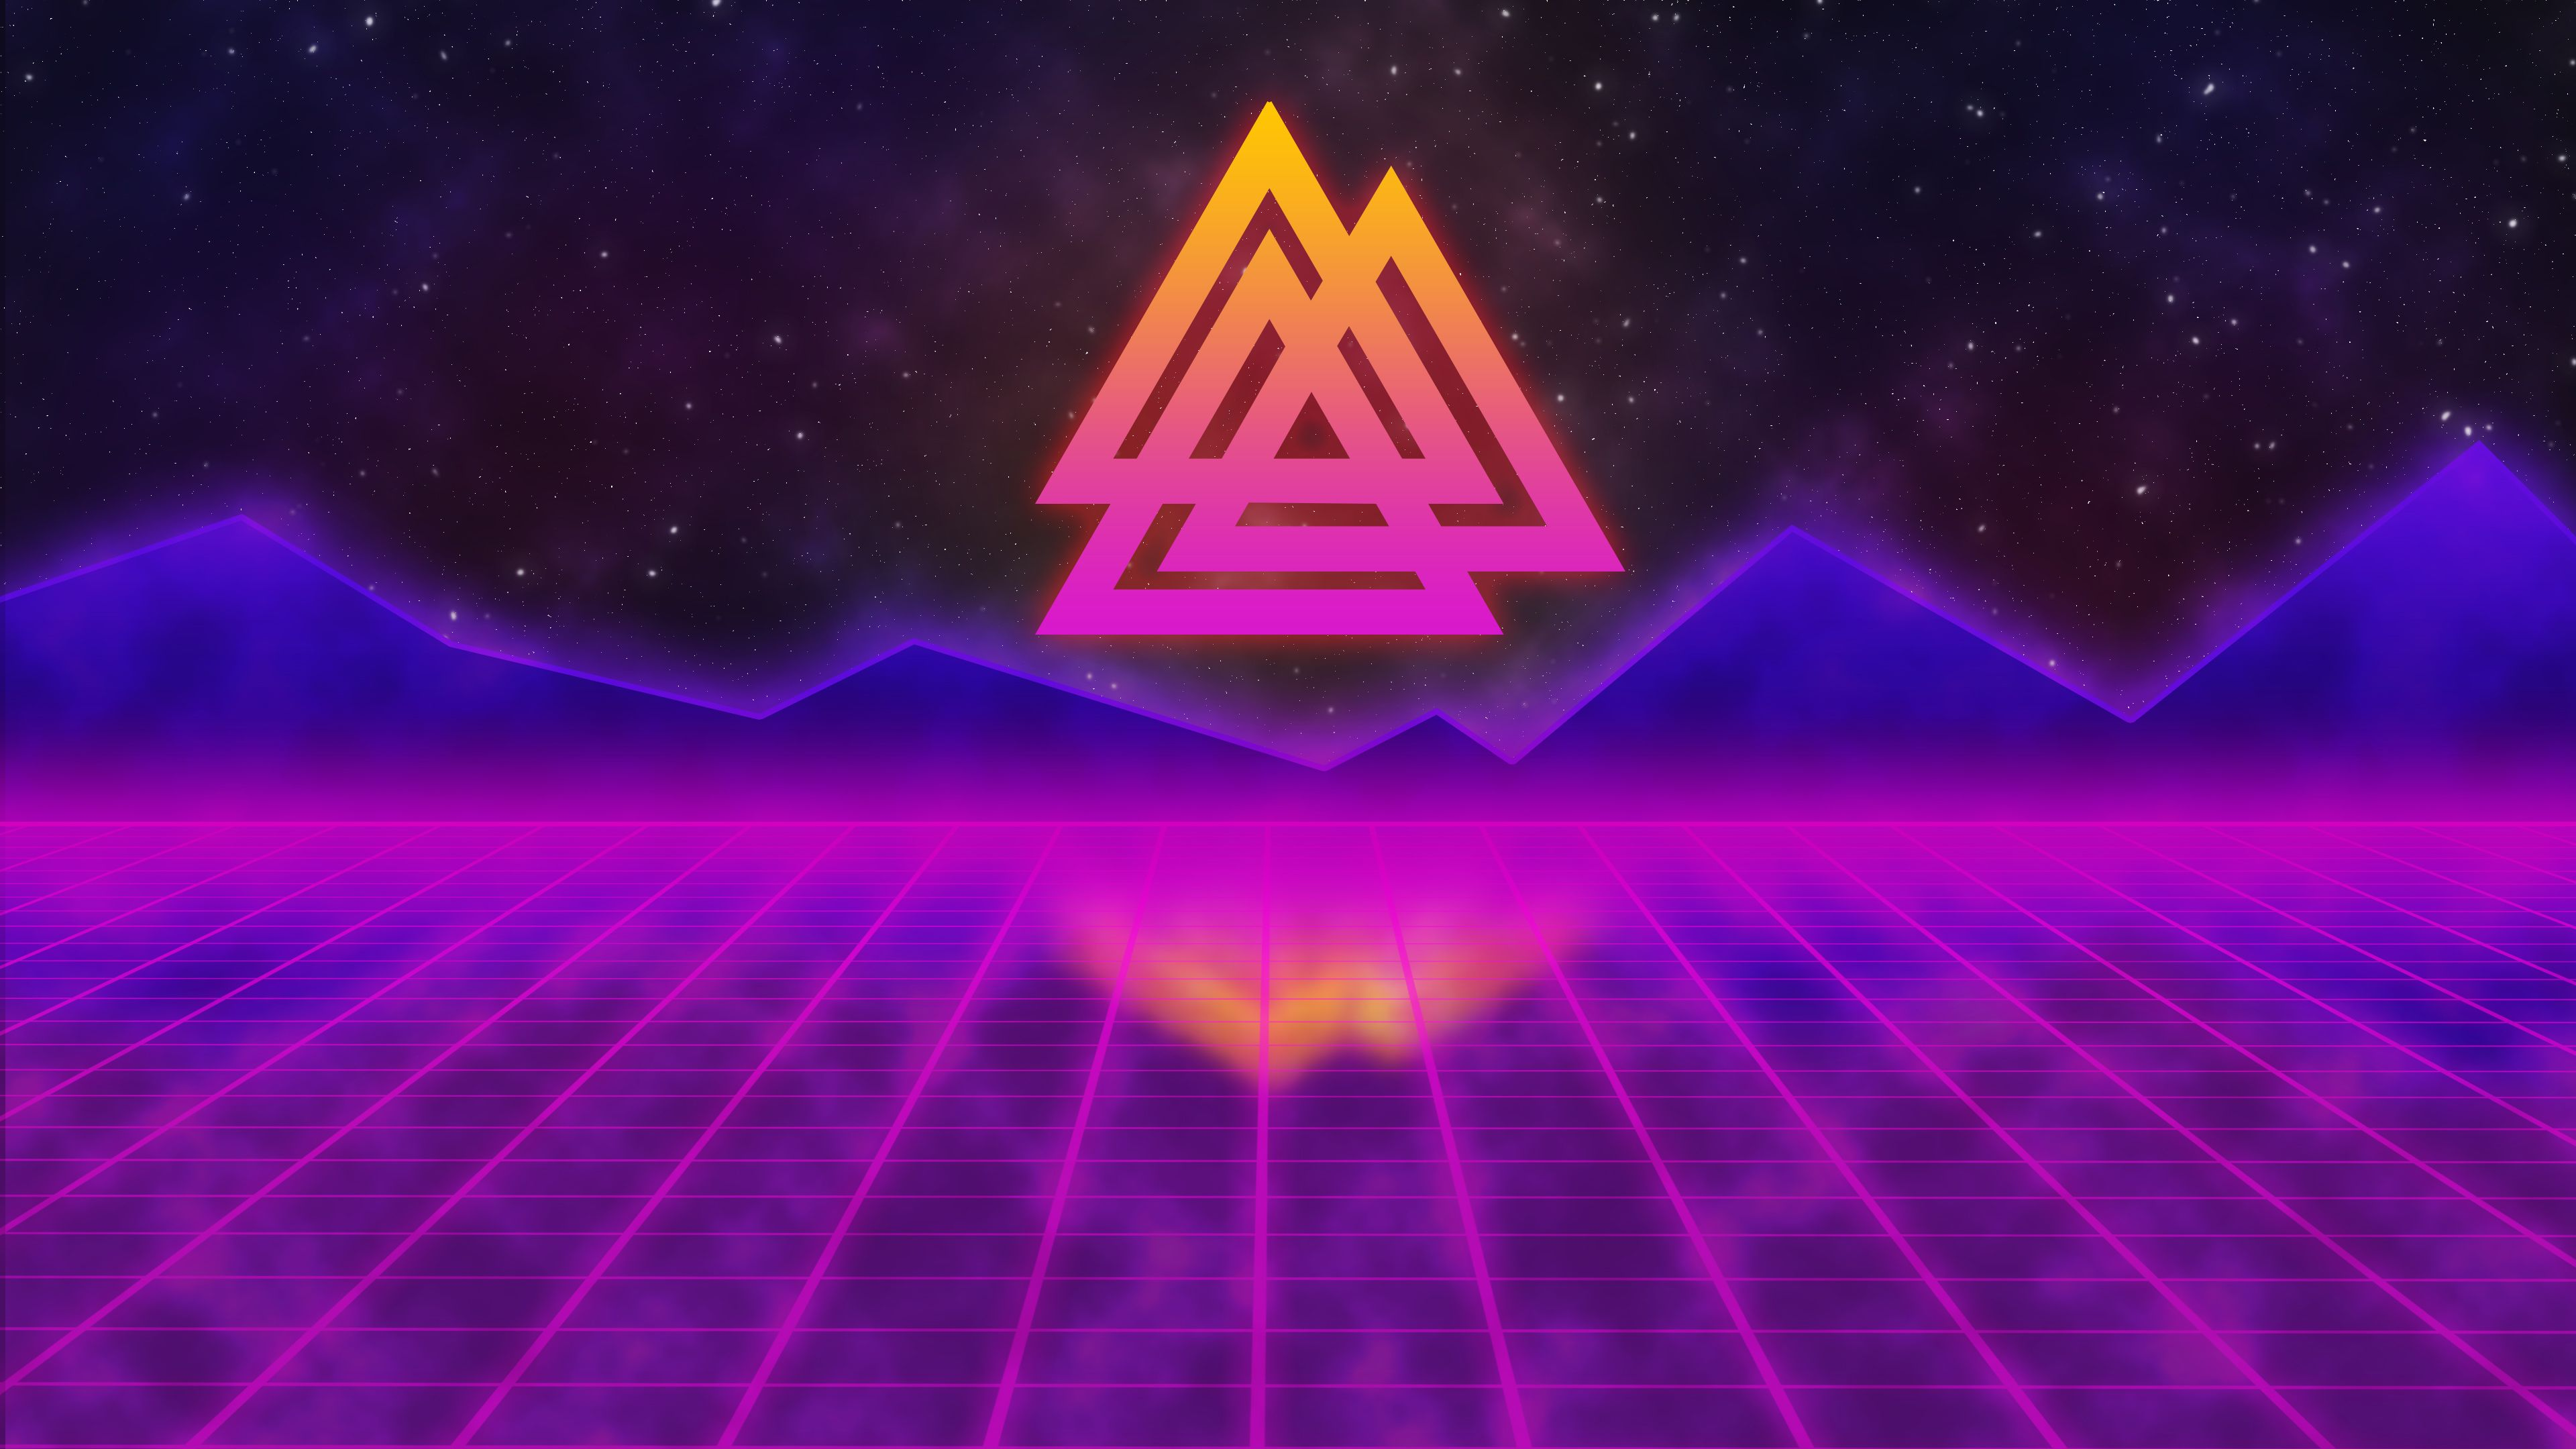 4k Retro Synthwave Purple Wallpapers - Wallpaper Cave